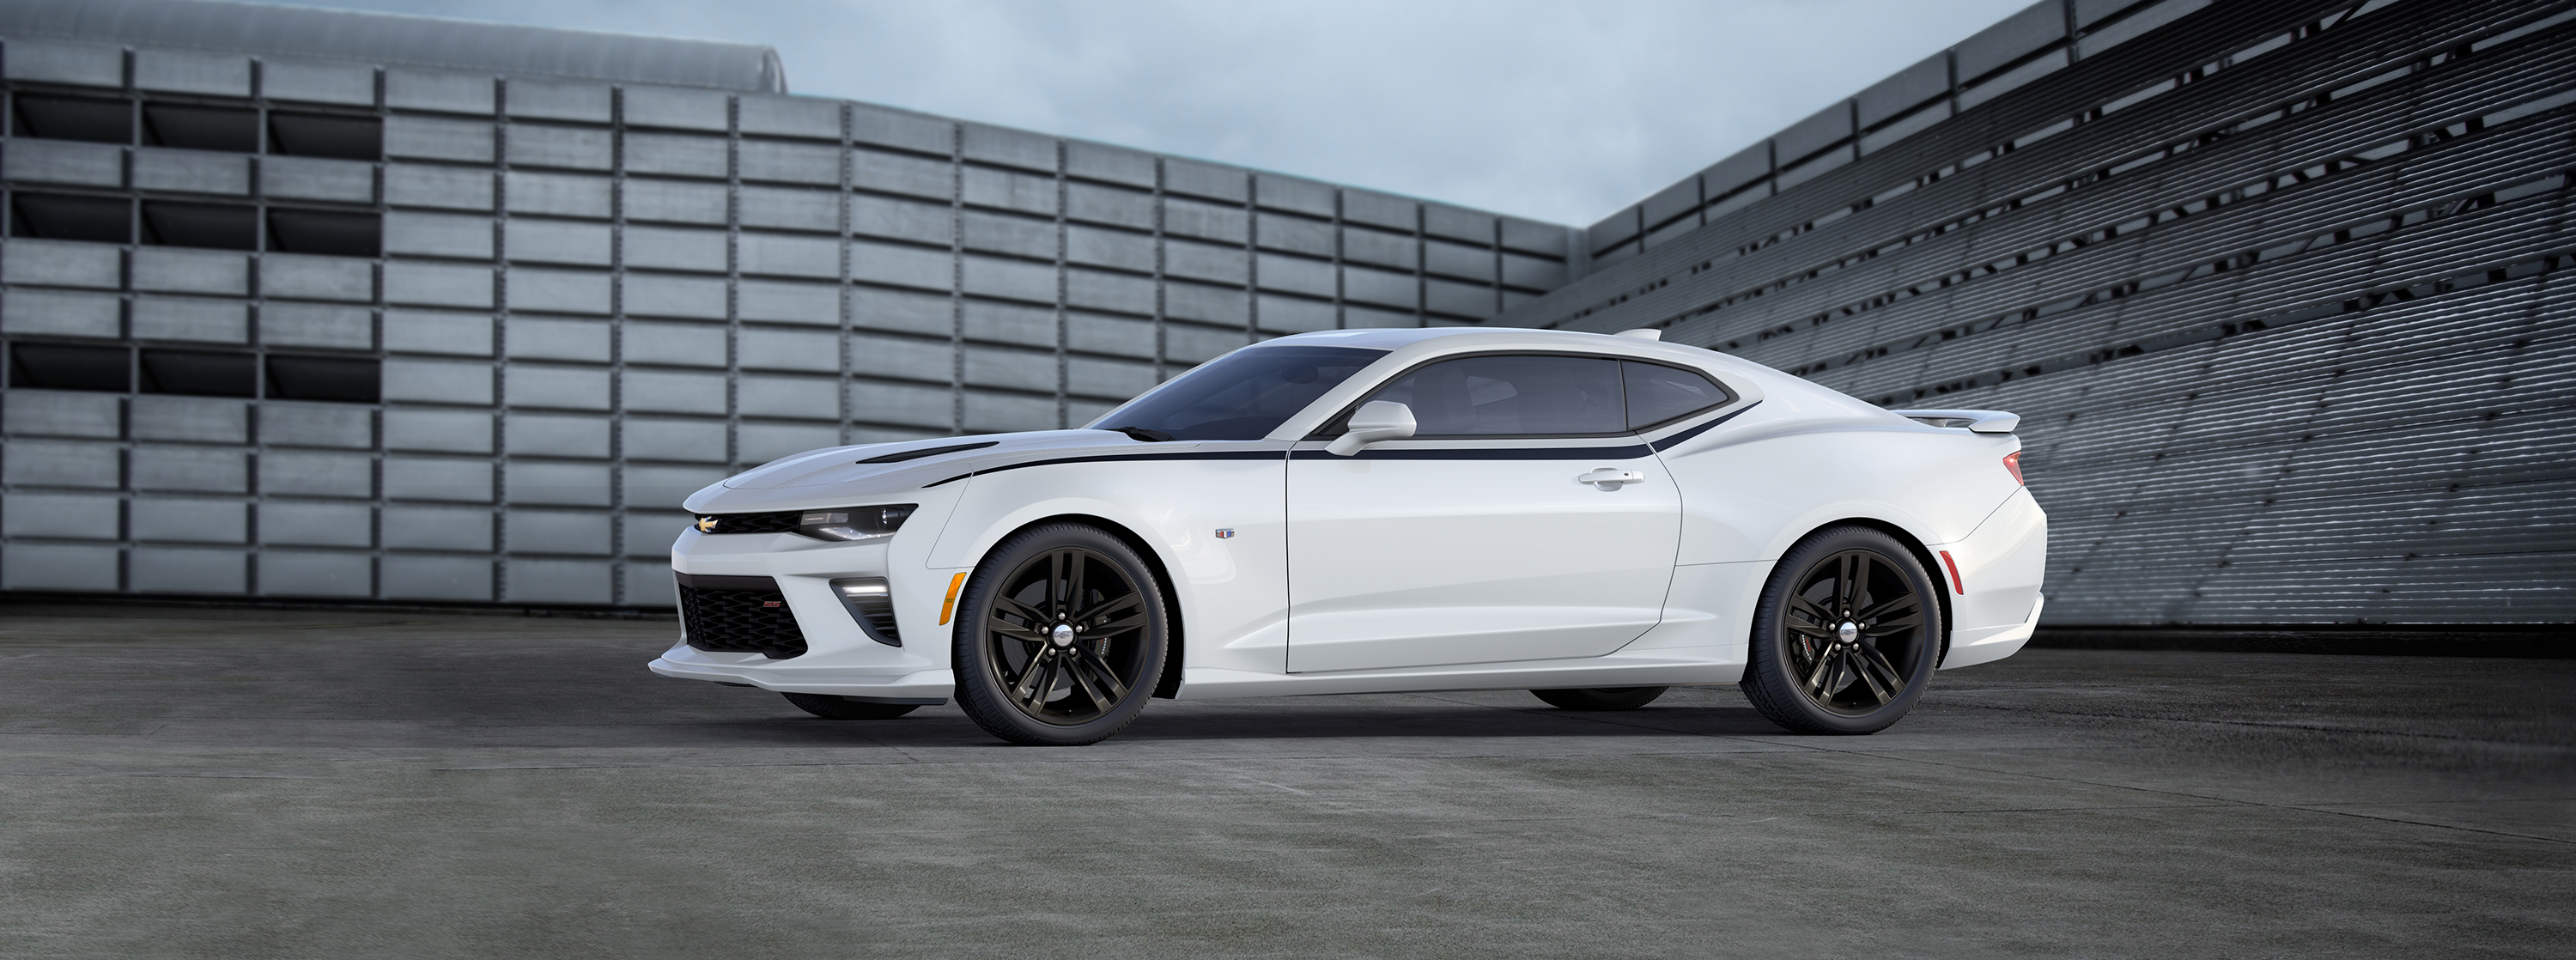 Chevy reveals price online visualizer for 2016 camaro for Online visualizer